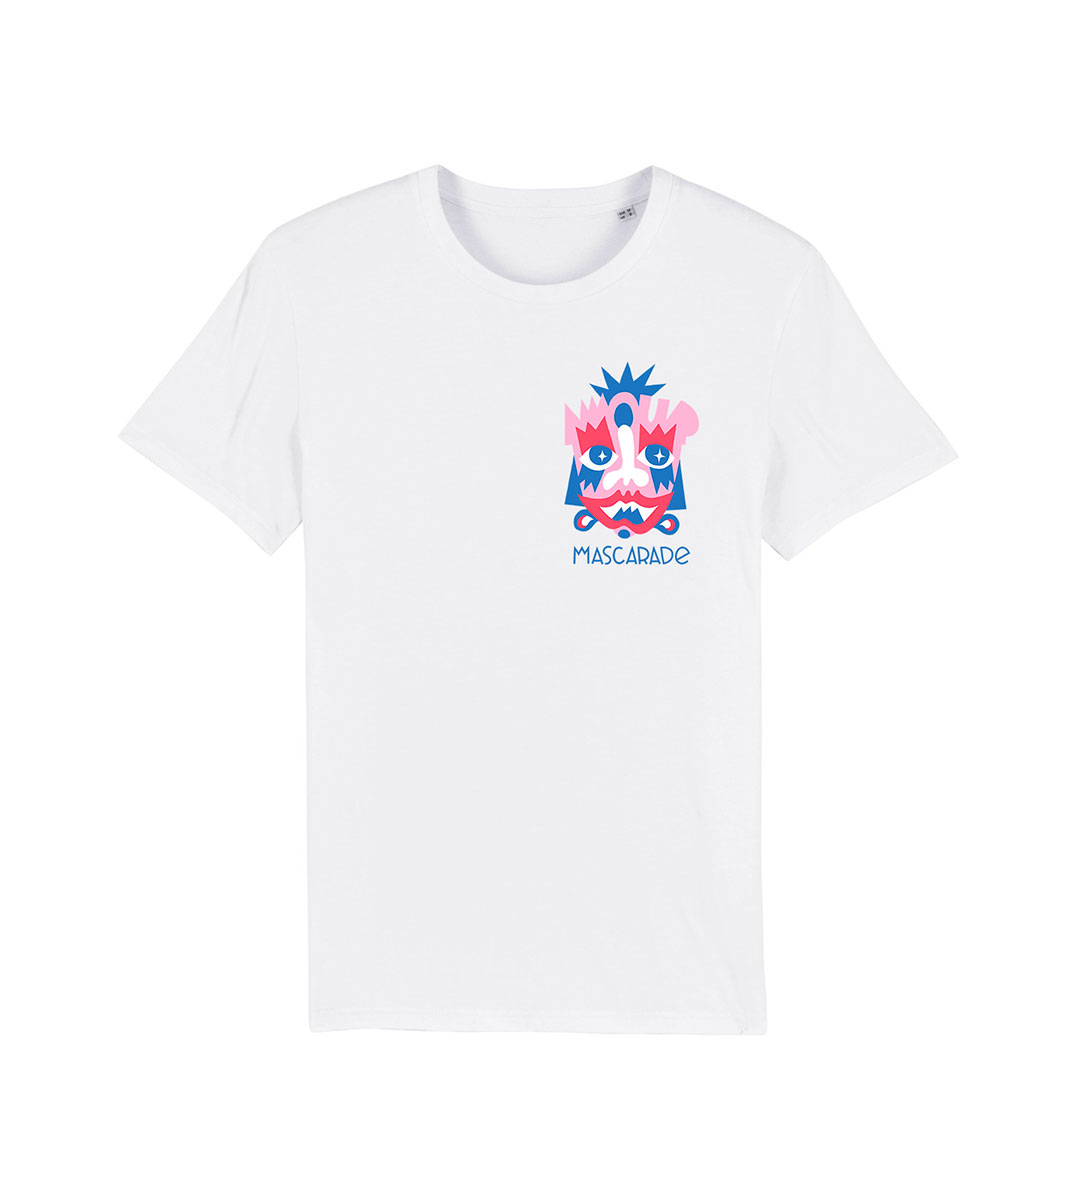 mockup tshirt rose mascarade